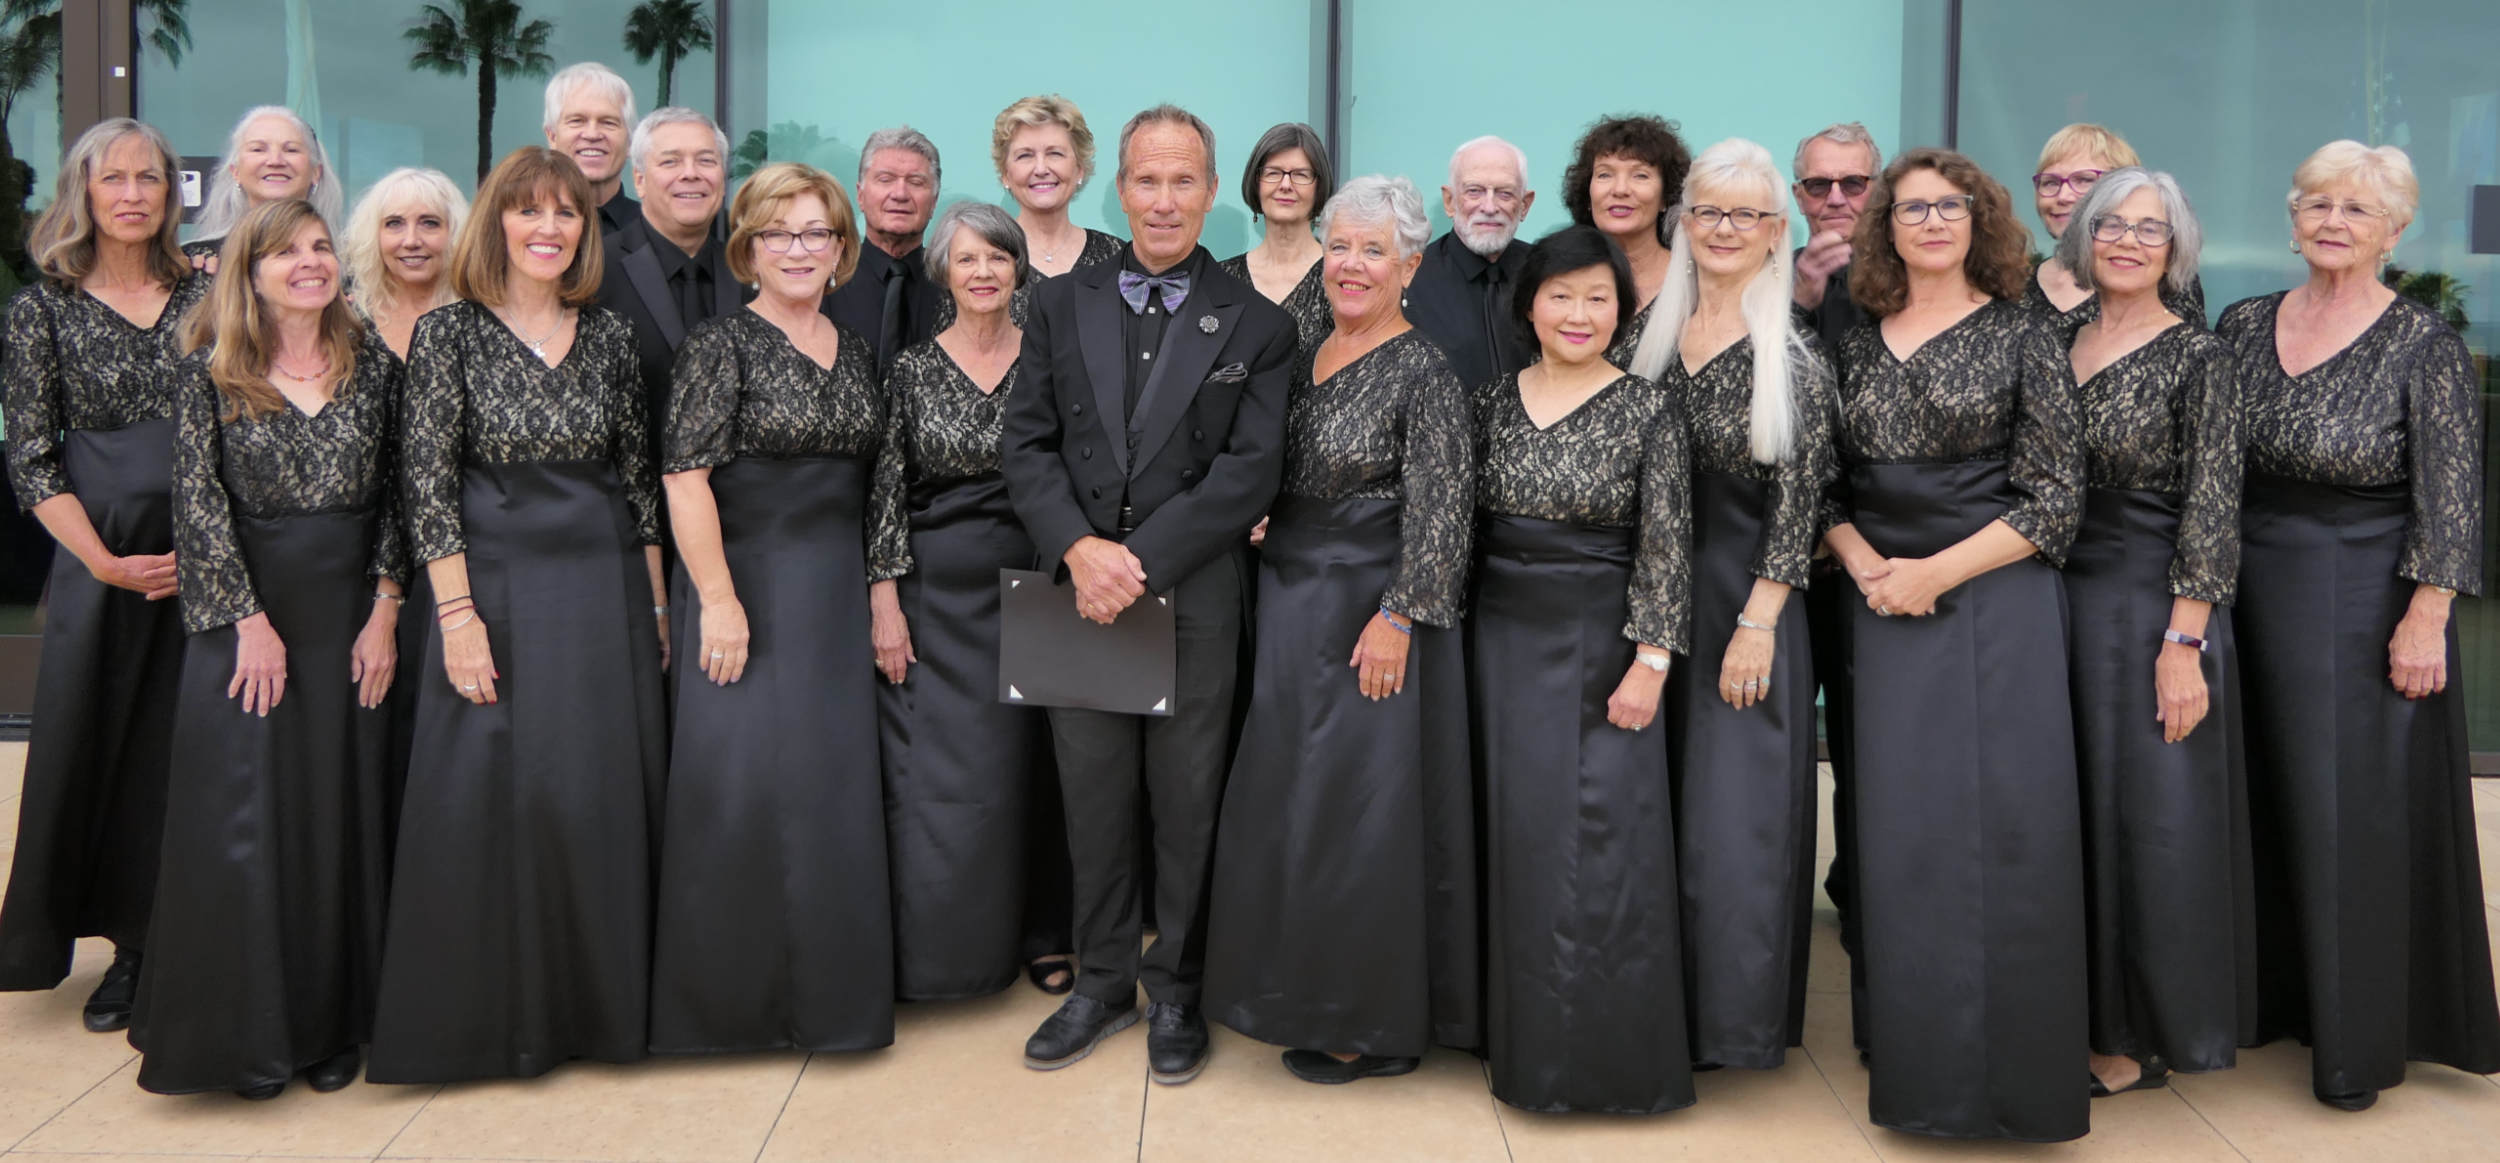 roger anderson chorale